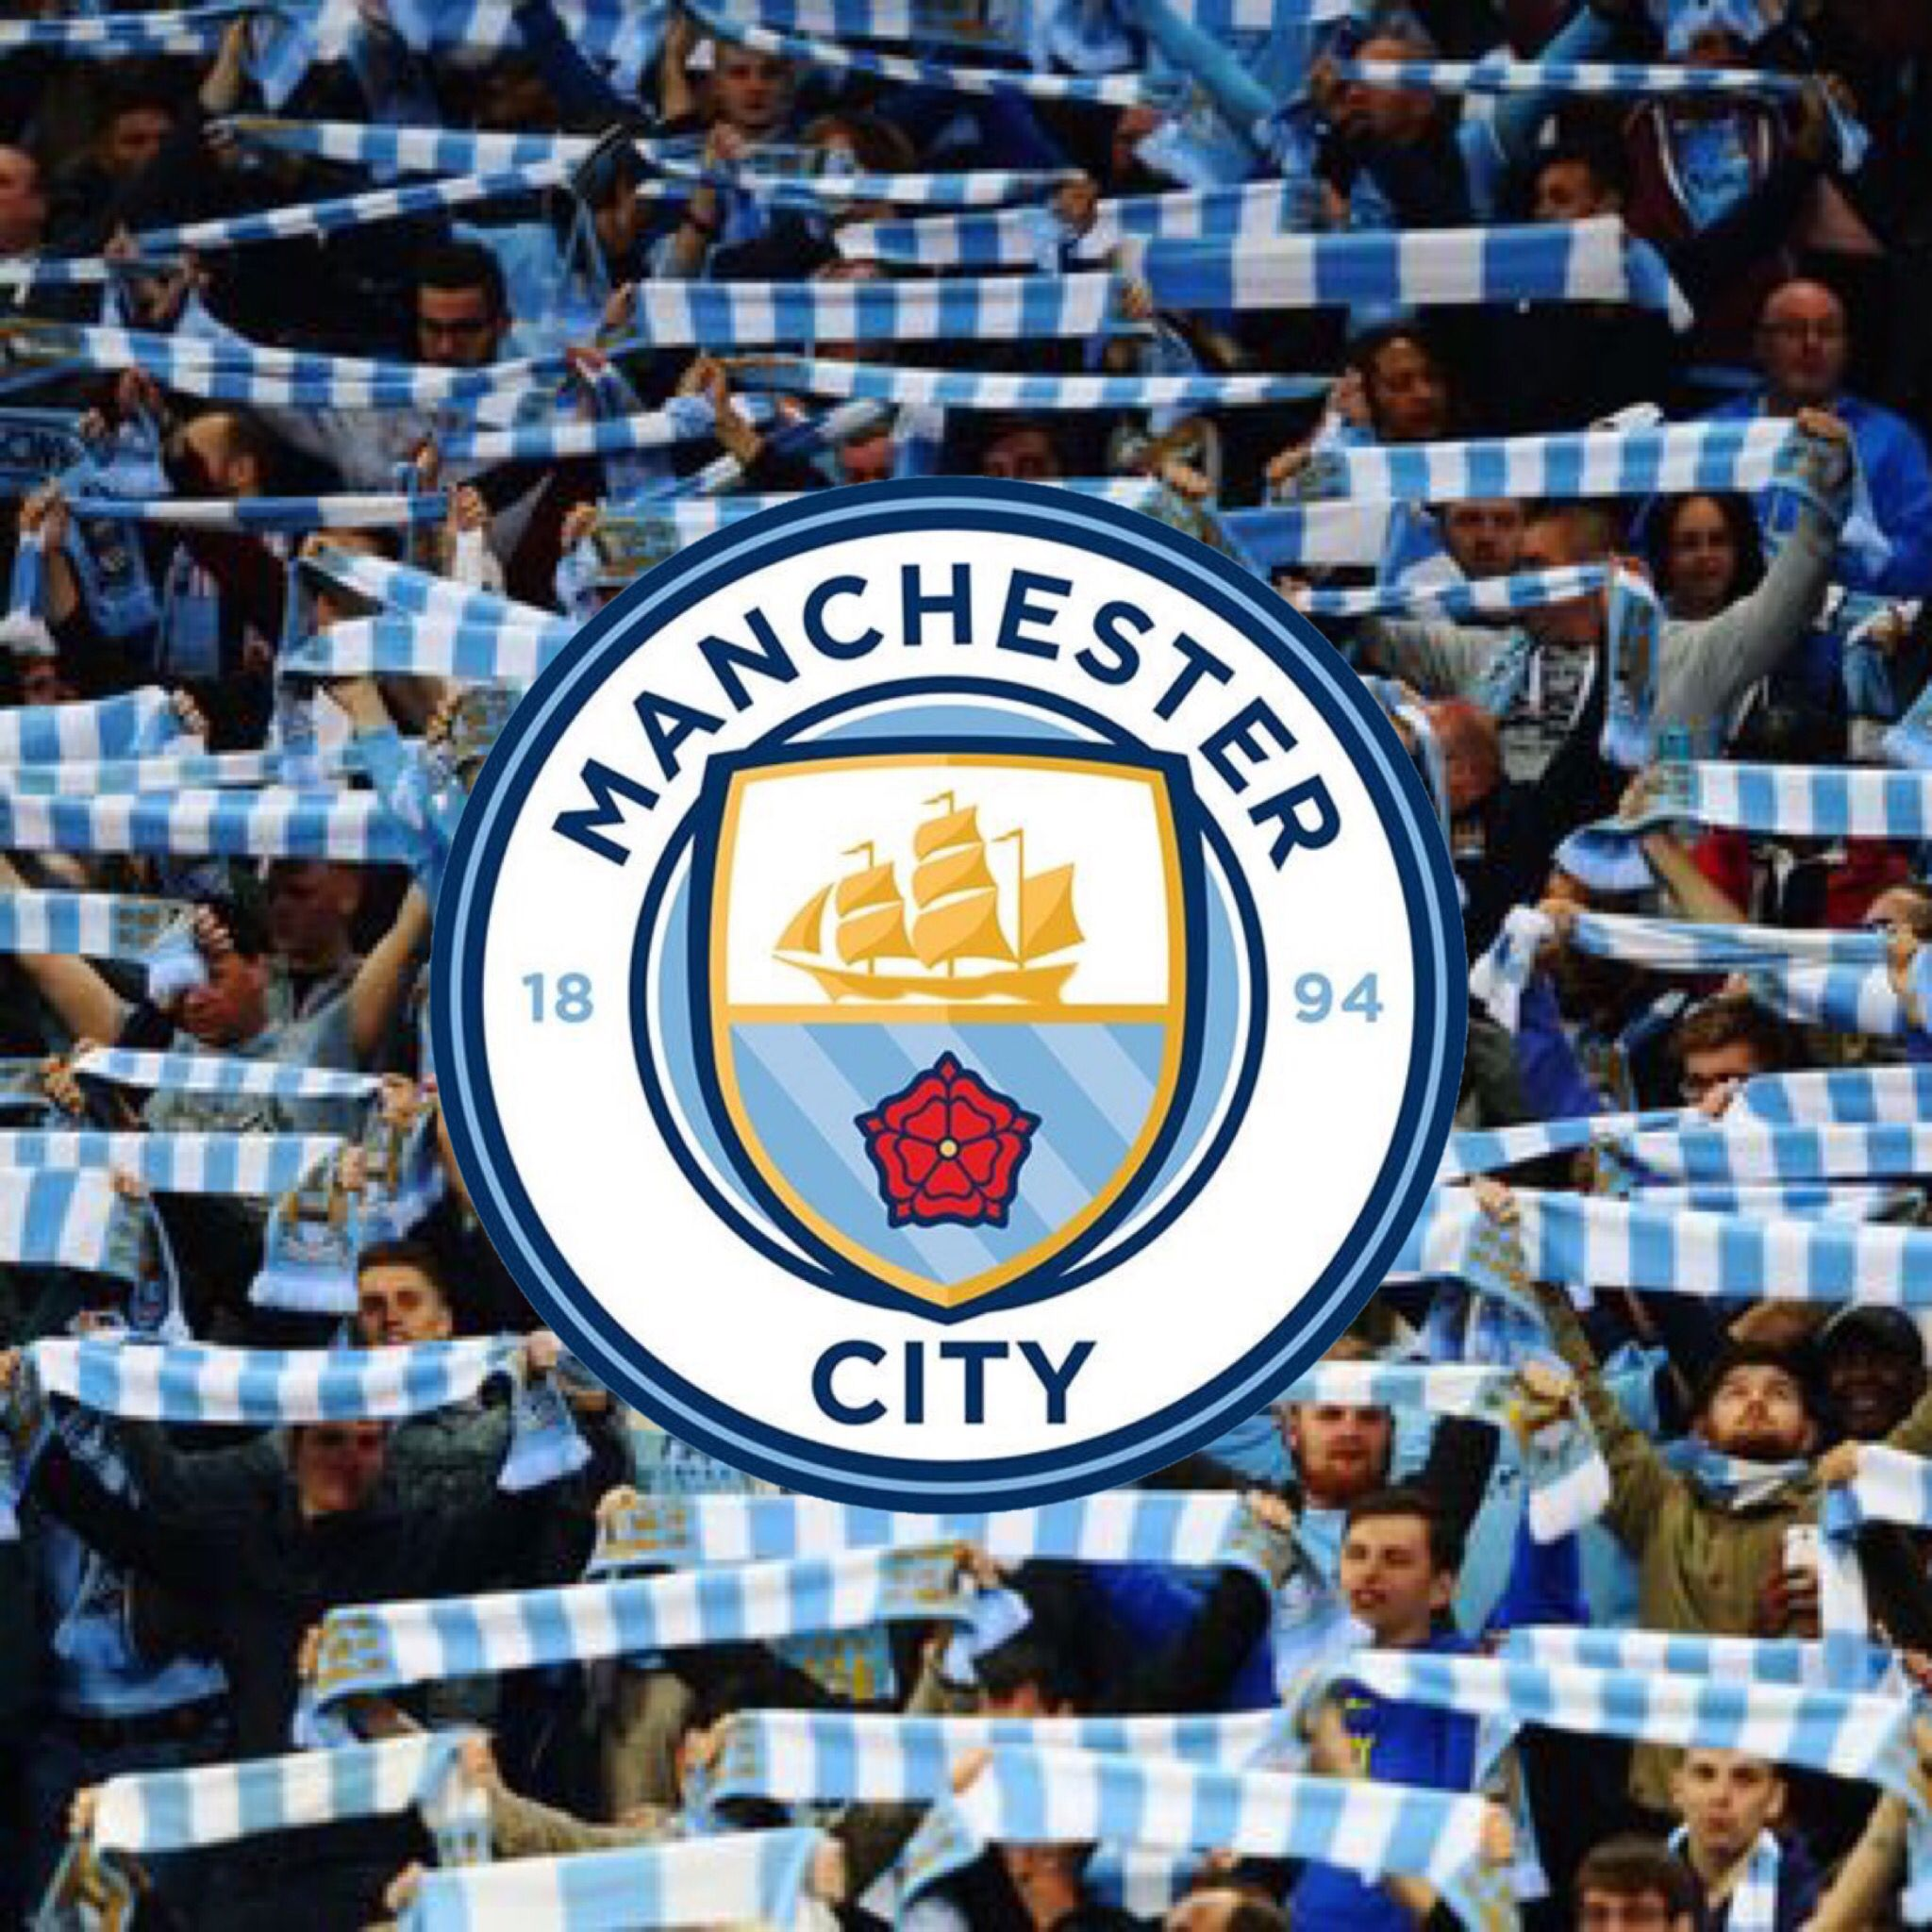 Manchester City Wallpaper For Bedrooms New Manchester City Iphone Ipad Wallpaper Mcfc Manchester